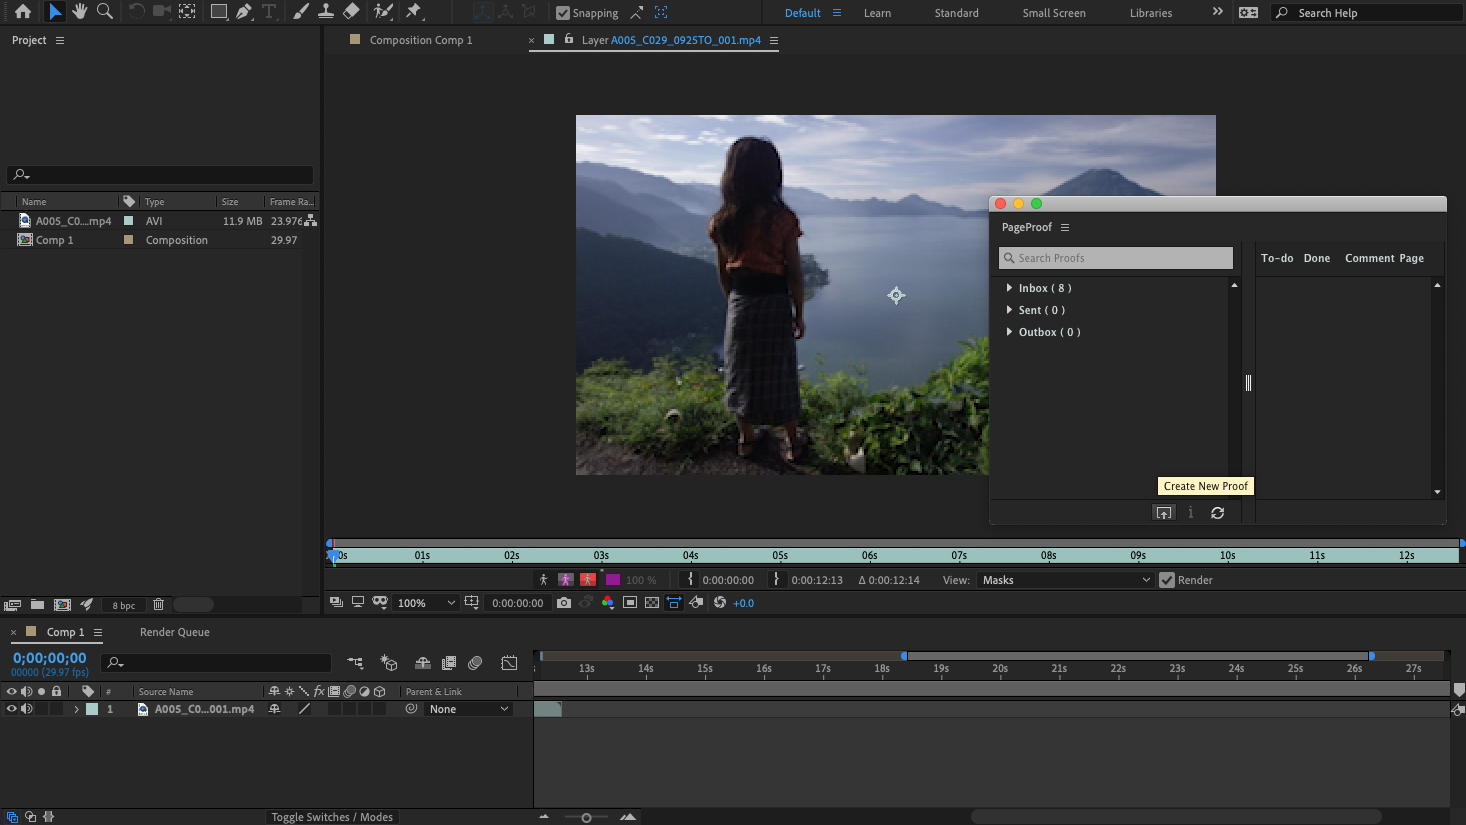 The PageProof panel in Adobe After Effects